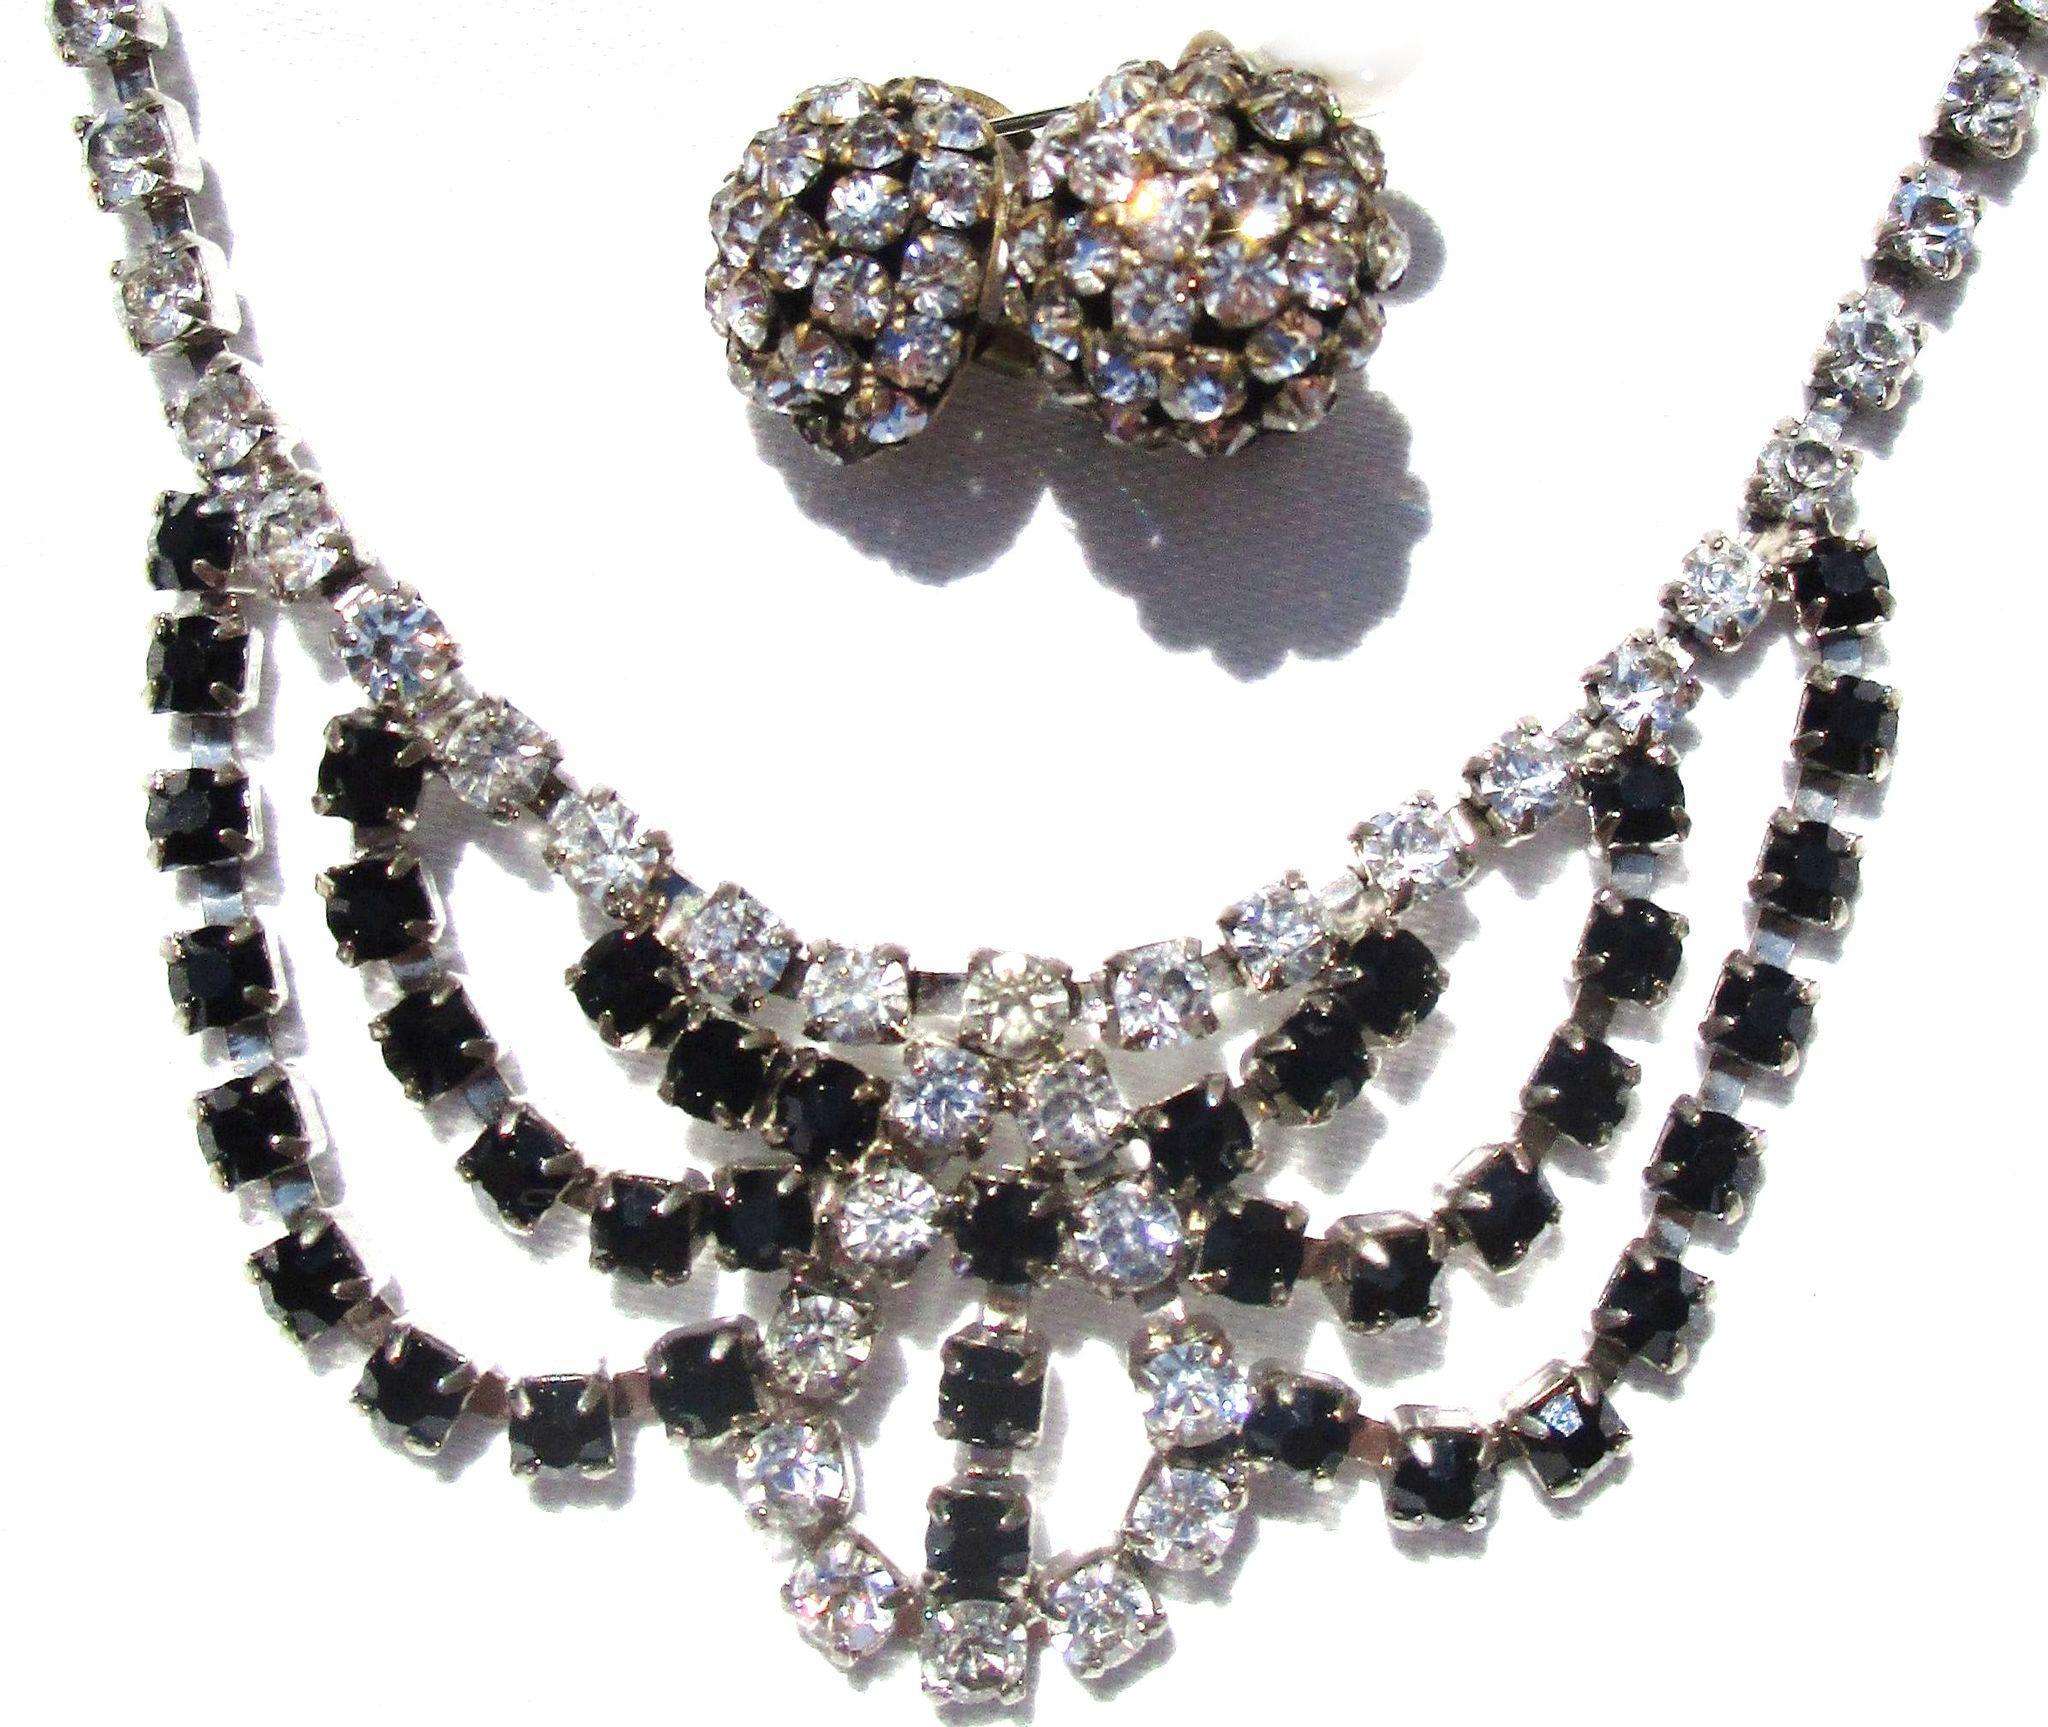 Vintage Black and White Rhinestone Necklace/Earrings